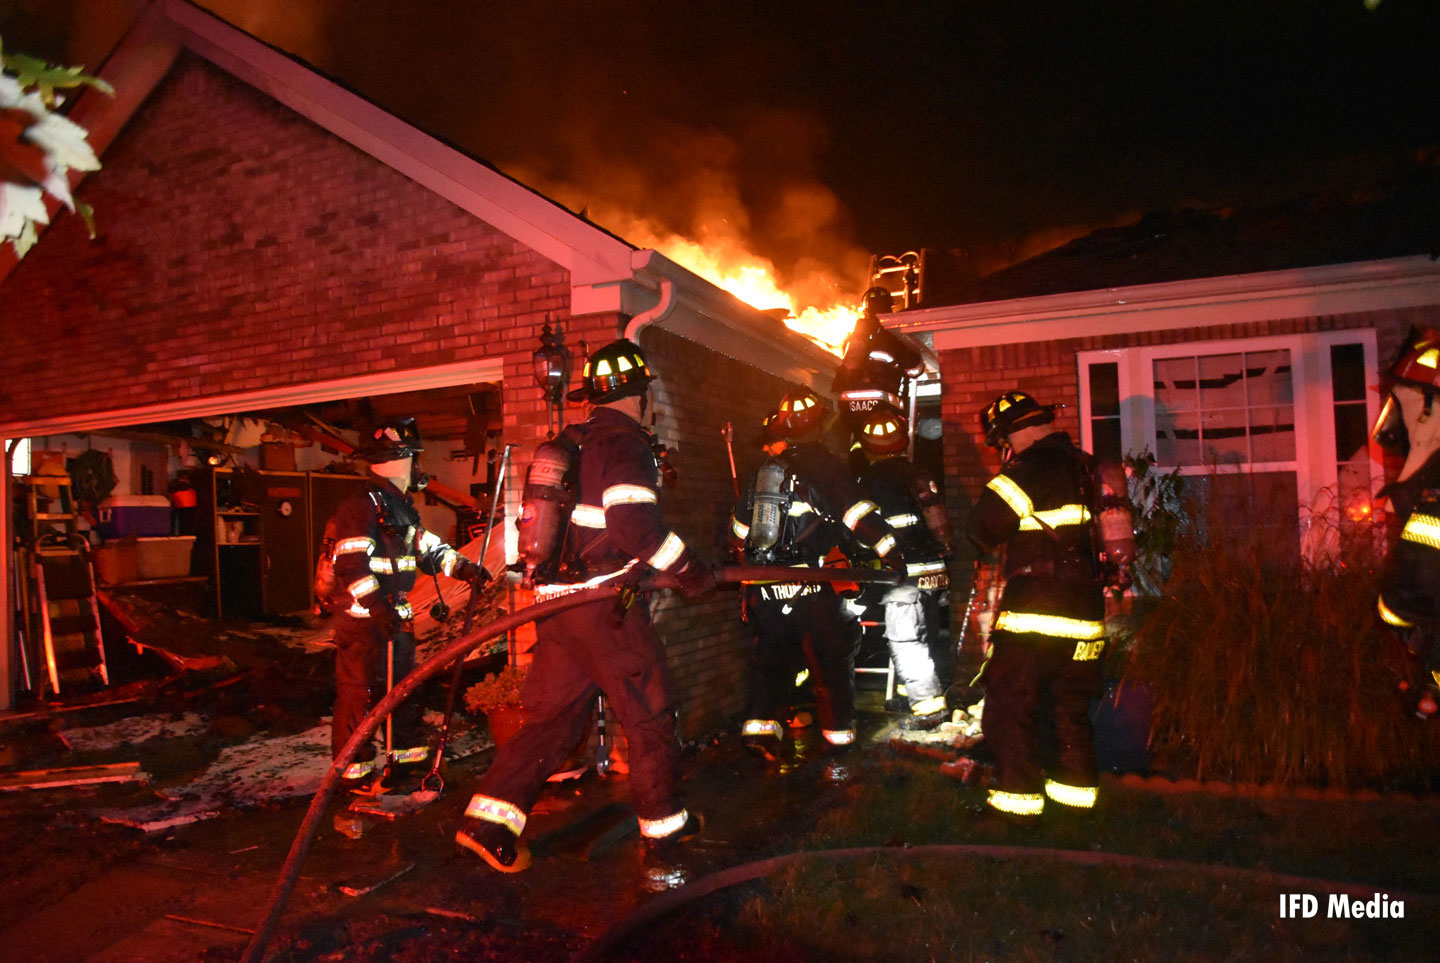 Firefighters advance a hoseline to attack fire in a home.